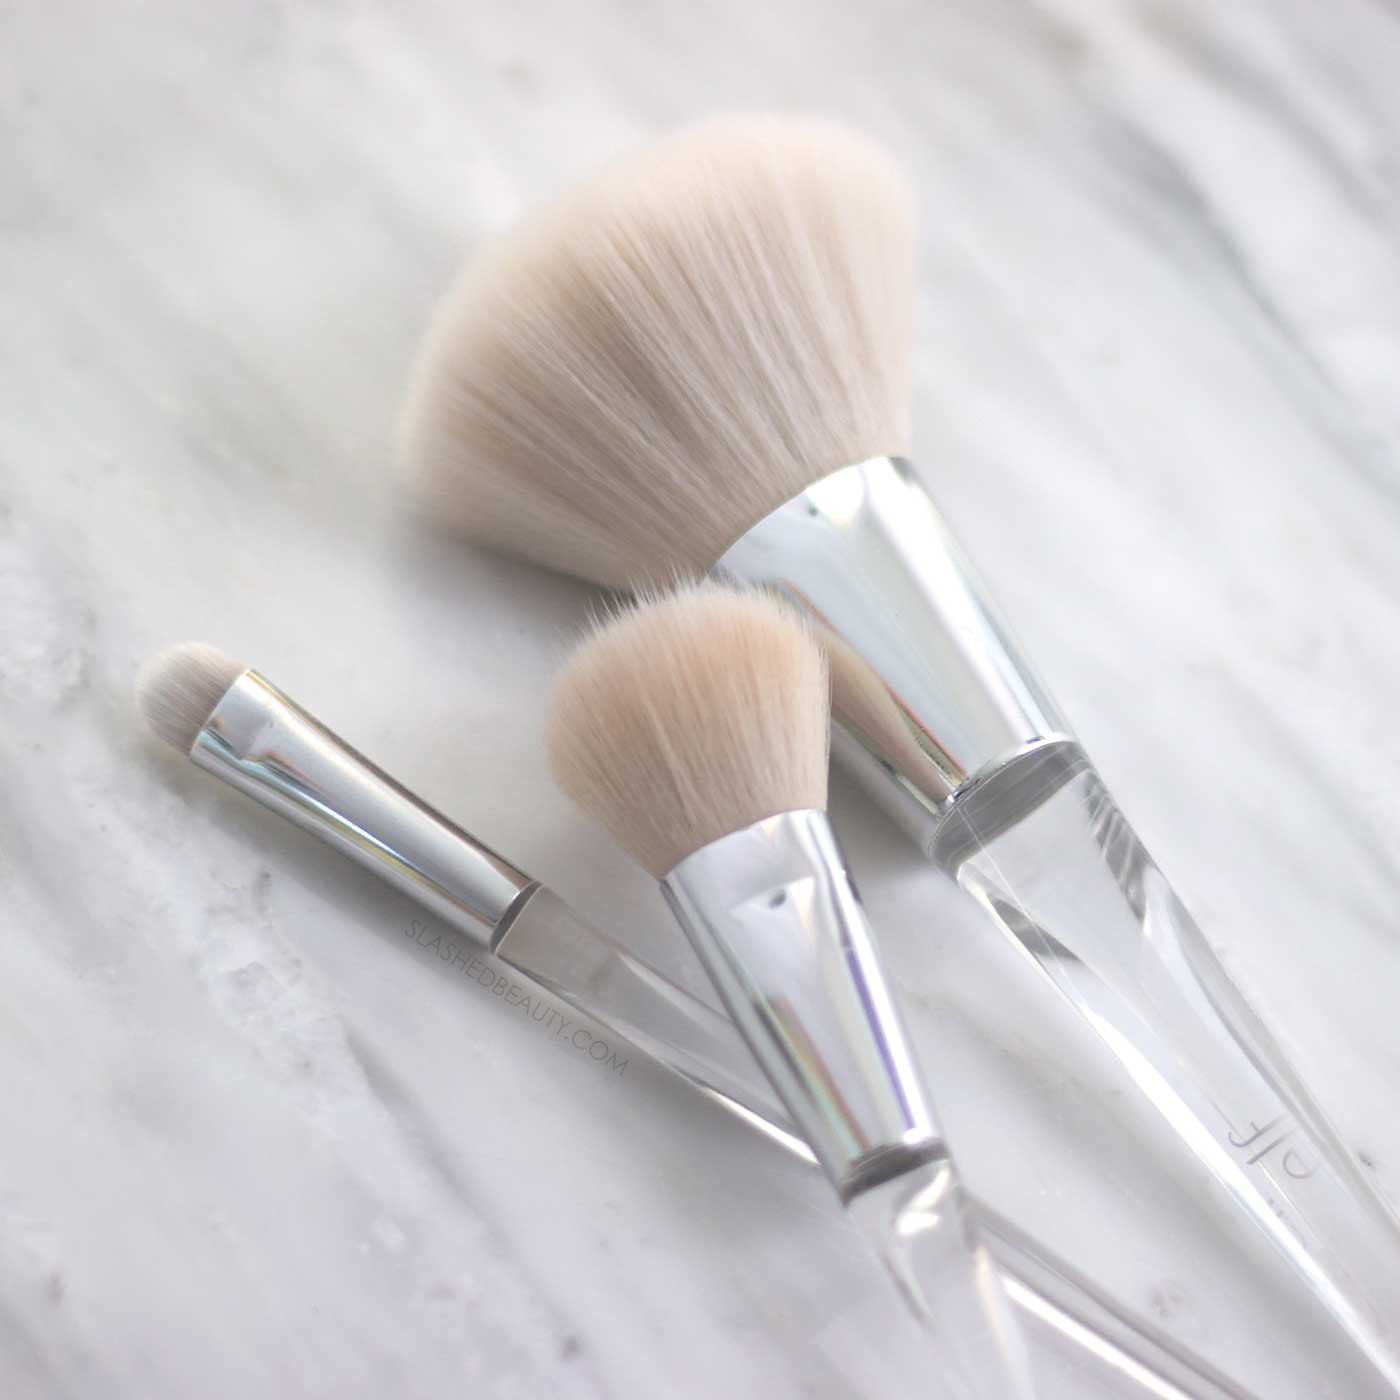 Best Makeup Brushes from e.l.f. - Precision Collection | The 4 Best Brands for Budget Makeup Brushes | Slashed Beauty